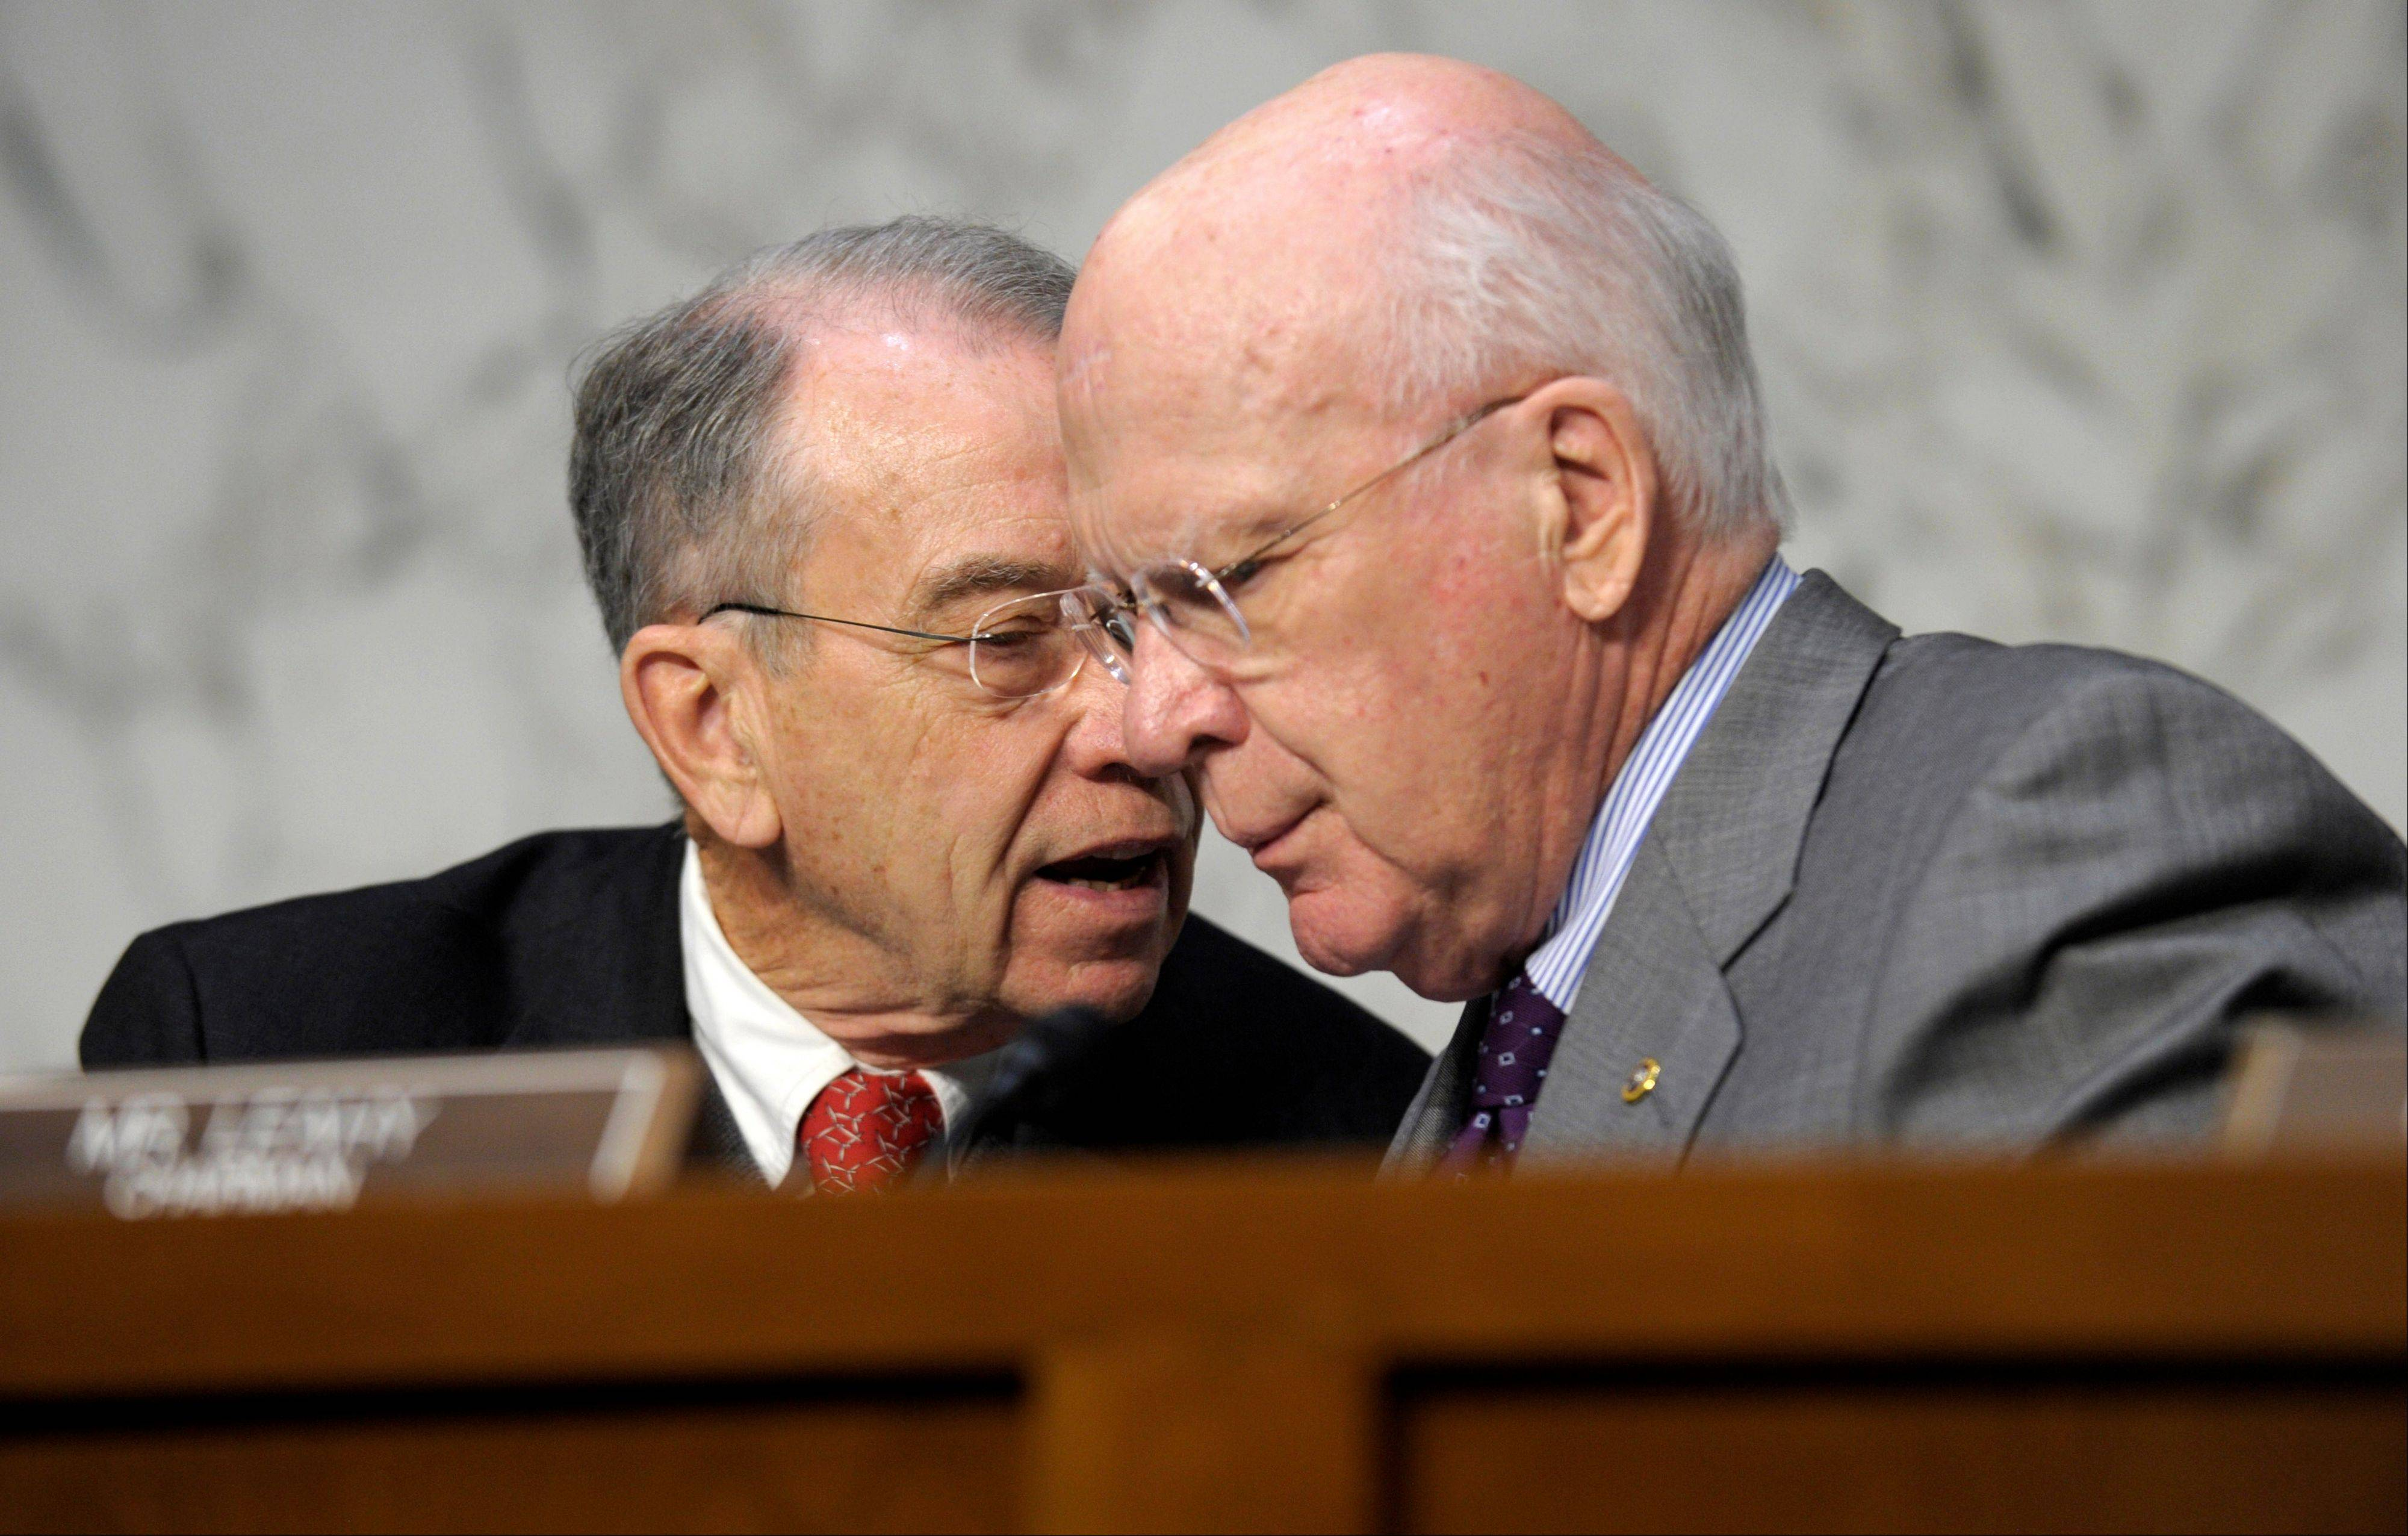 Senate Judiciary Committee Chairman Sen. Patrick Leahy, D-Vt., right, talks with the committee�s ranking Republican Sen. Charles Grassley, R-Iowa. A divided Senate Judiciary Committee approved a Democratic bill Tuesday expanding required federal background checks to nearly all gun purchases, giving President Barack Obama an early victory on curbing gun violence in a fight that still faces difficult odds.